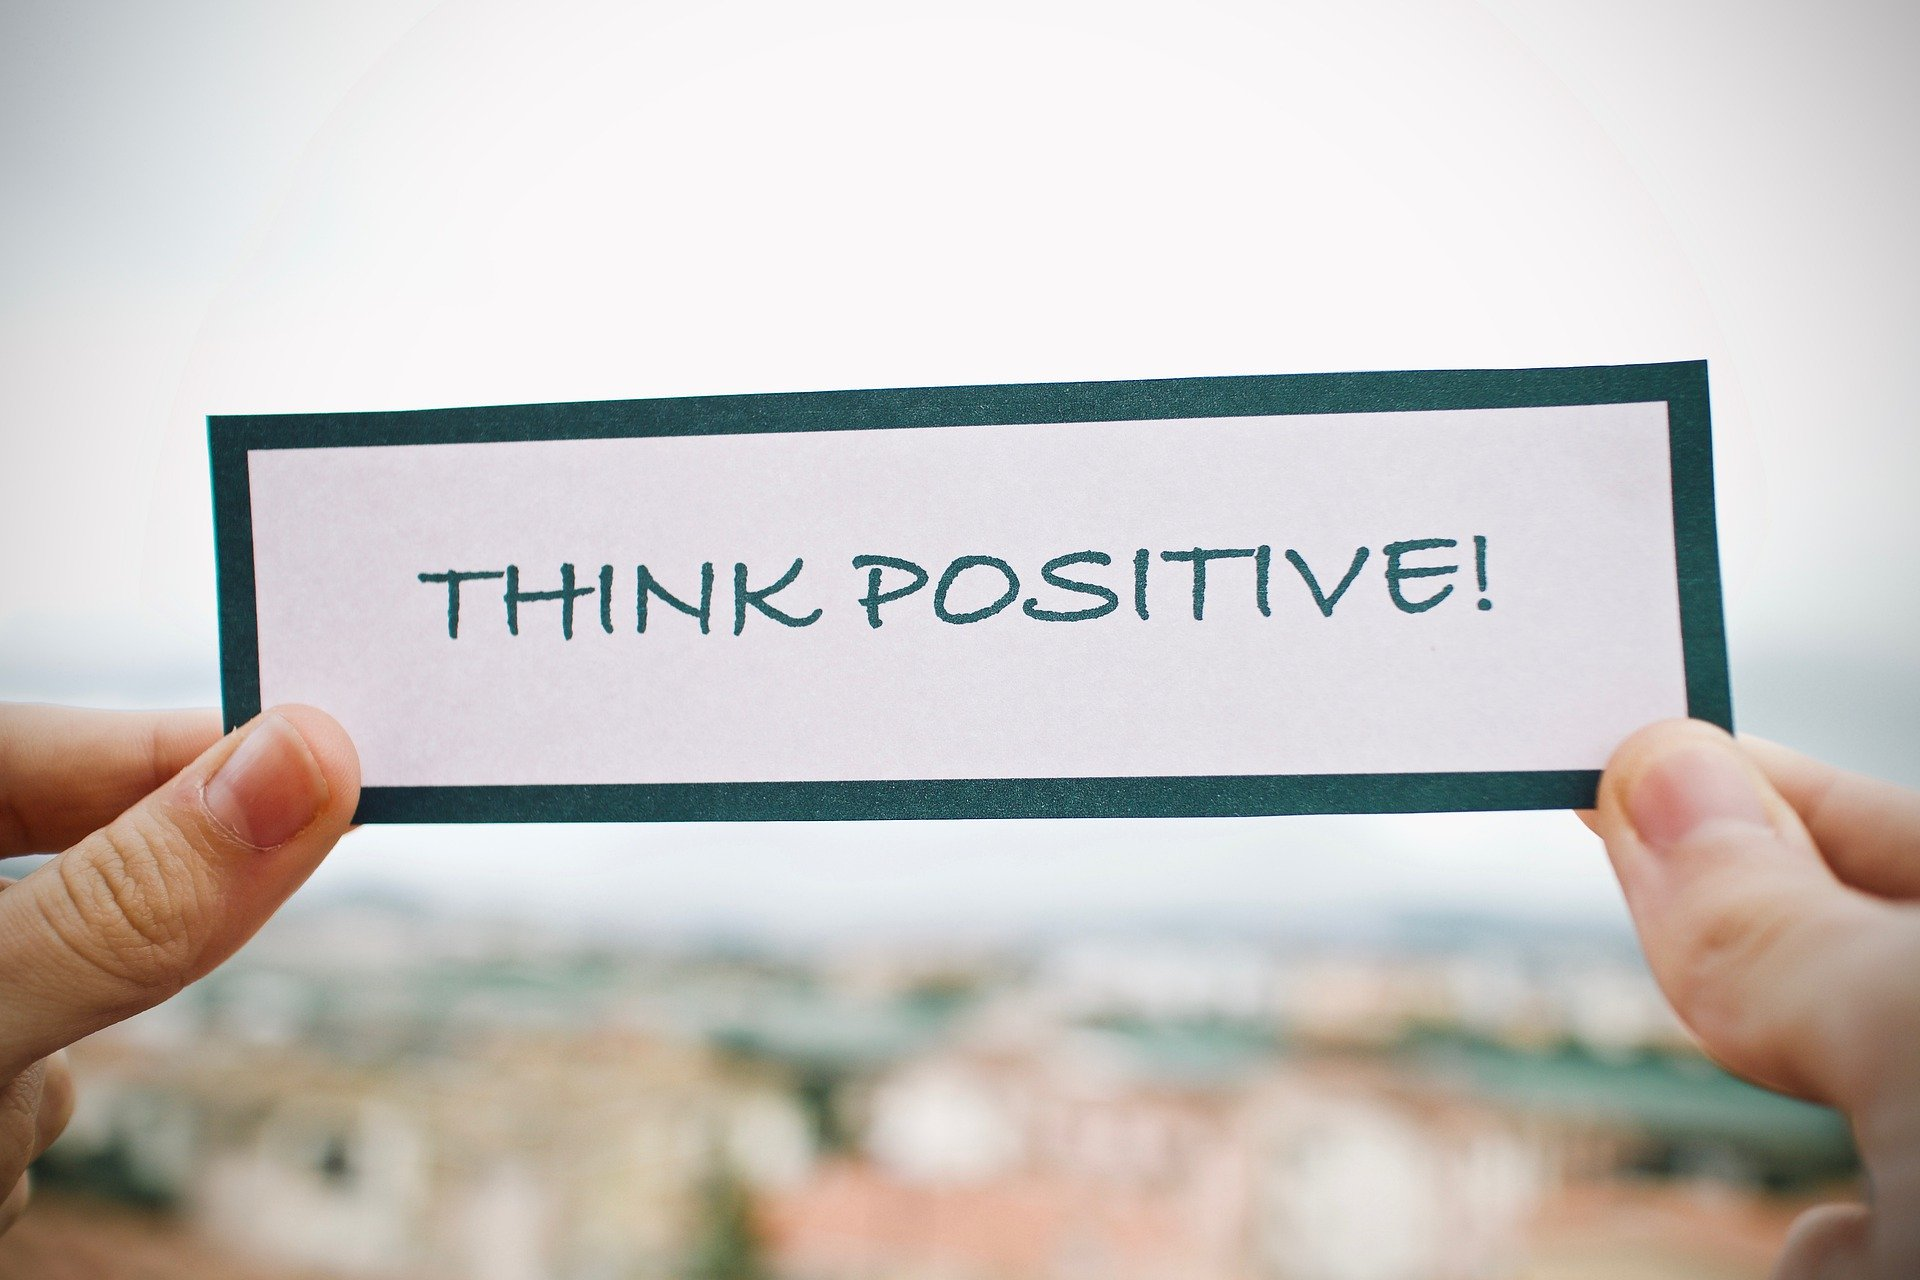 Positive thinking during coronavirus